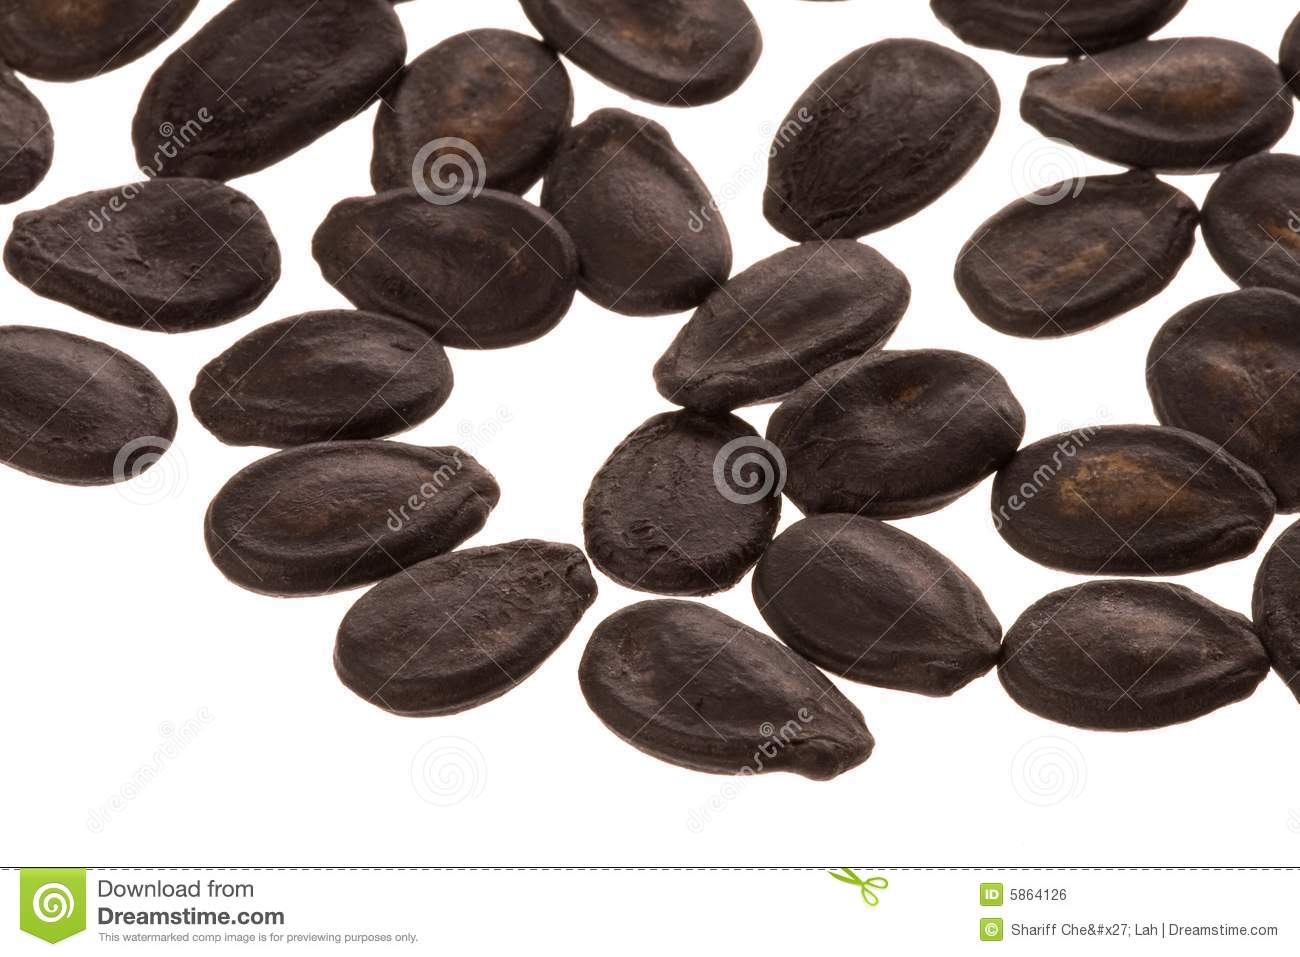 Water seed clipart.